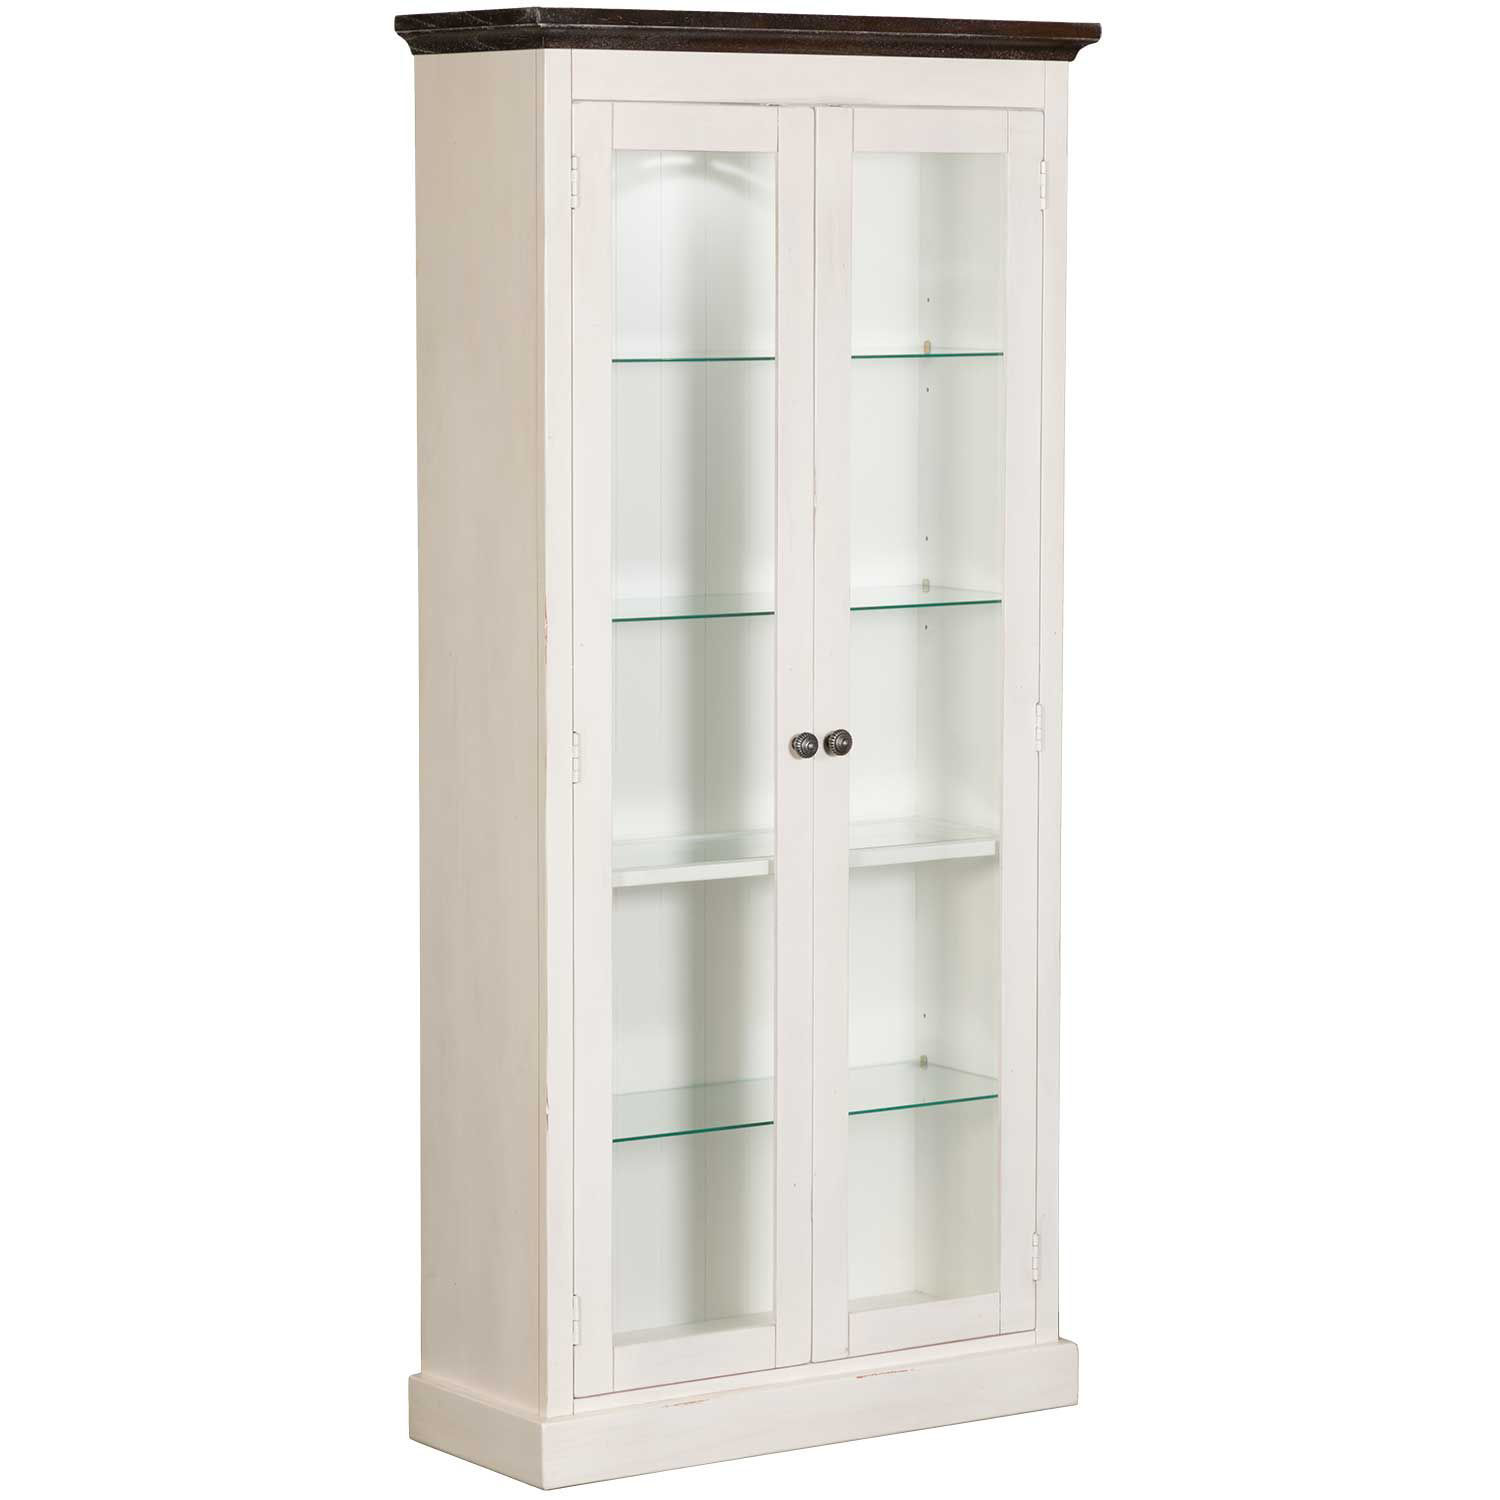 "Picture of Carriage House Curio Cabinet 76"" Tall"